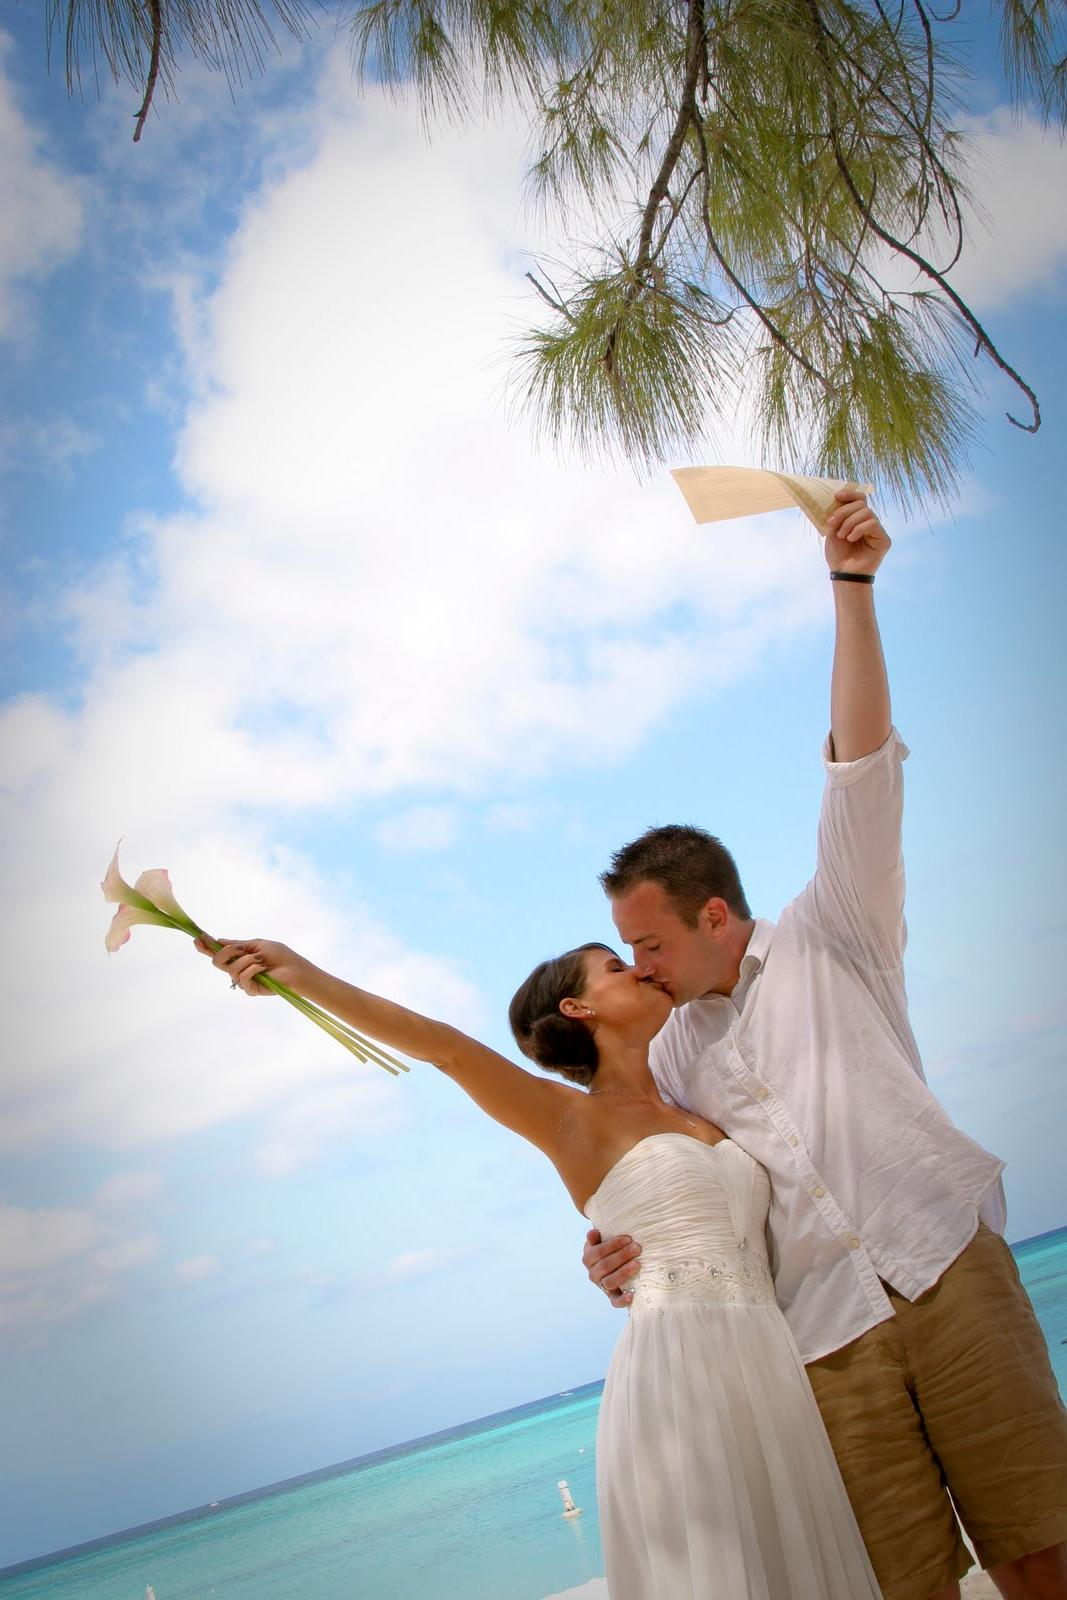 Traditional Cayman Beach Wedding Good Choice for Topeka, KS Couple